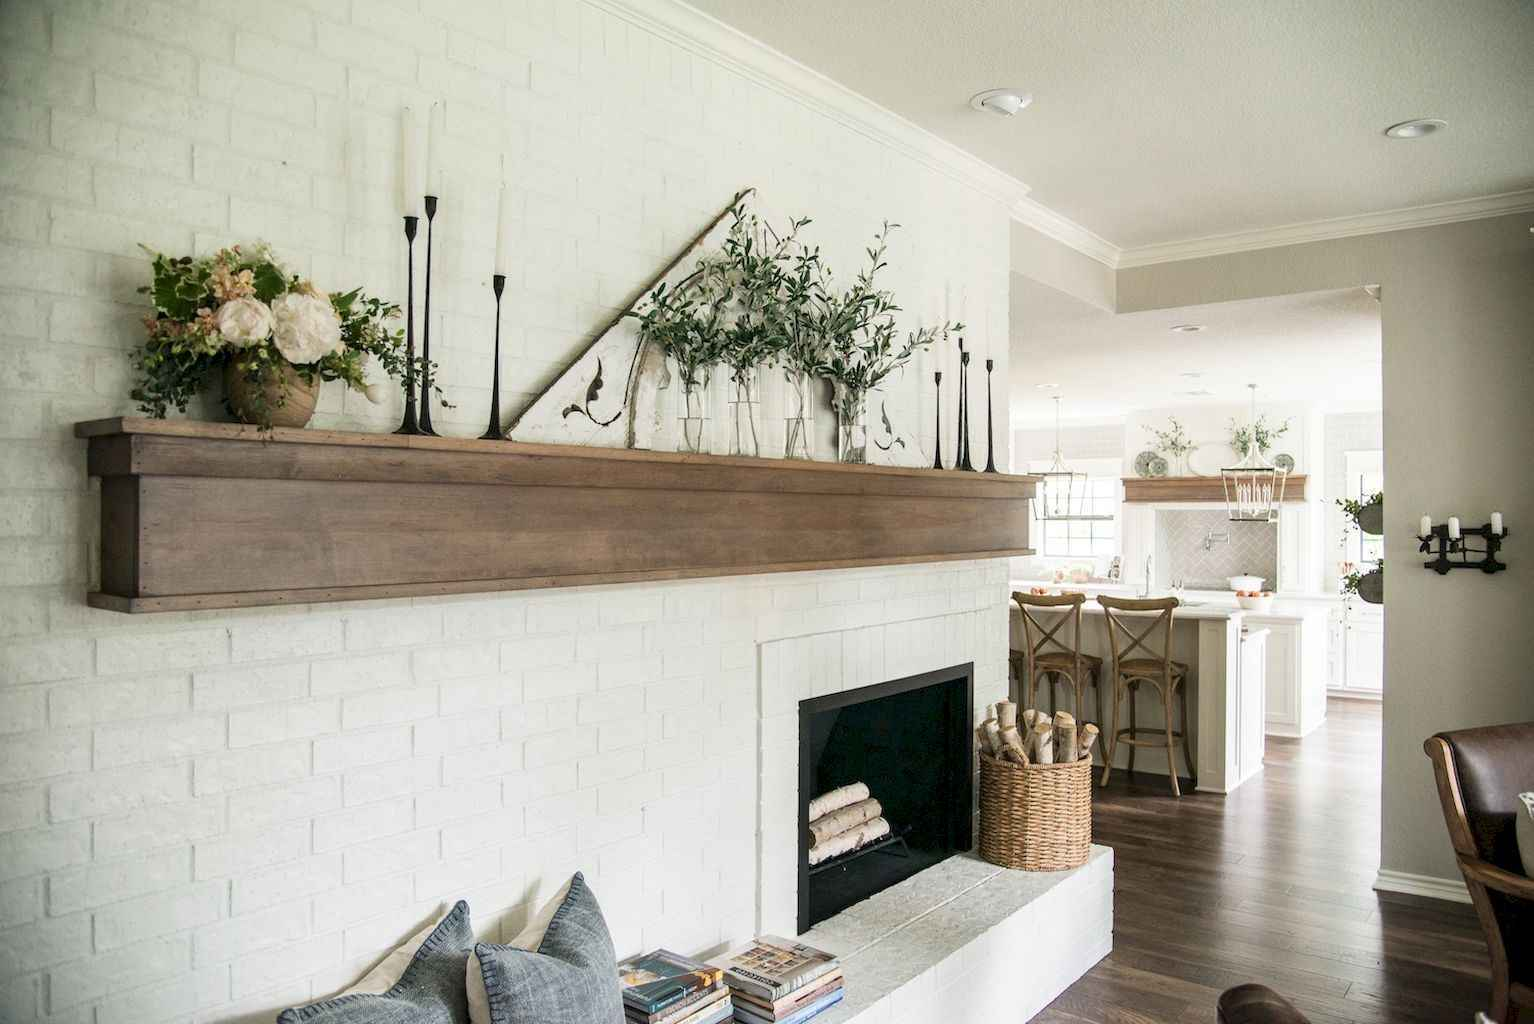 80 incridible rustic farmhouse fireplace ideas makeover (51 ...